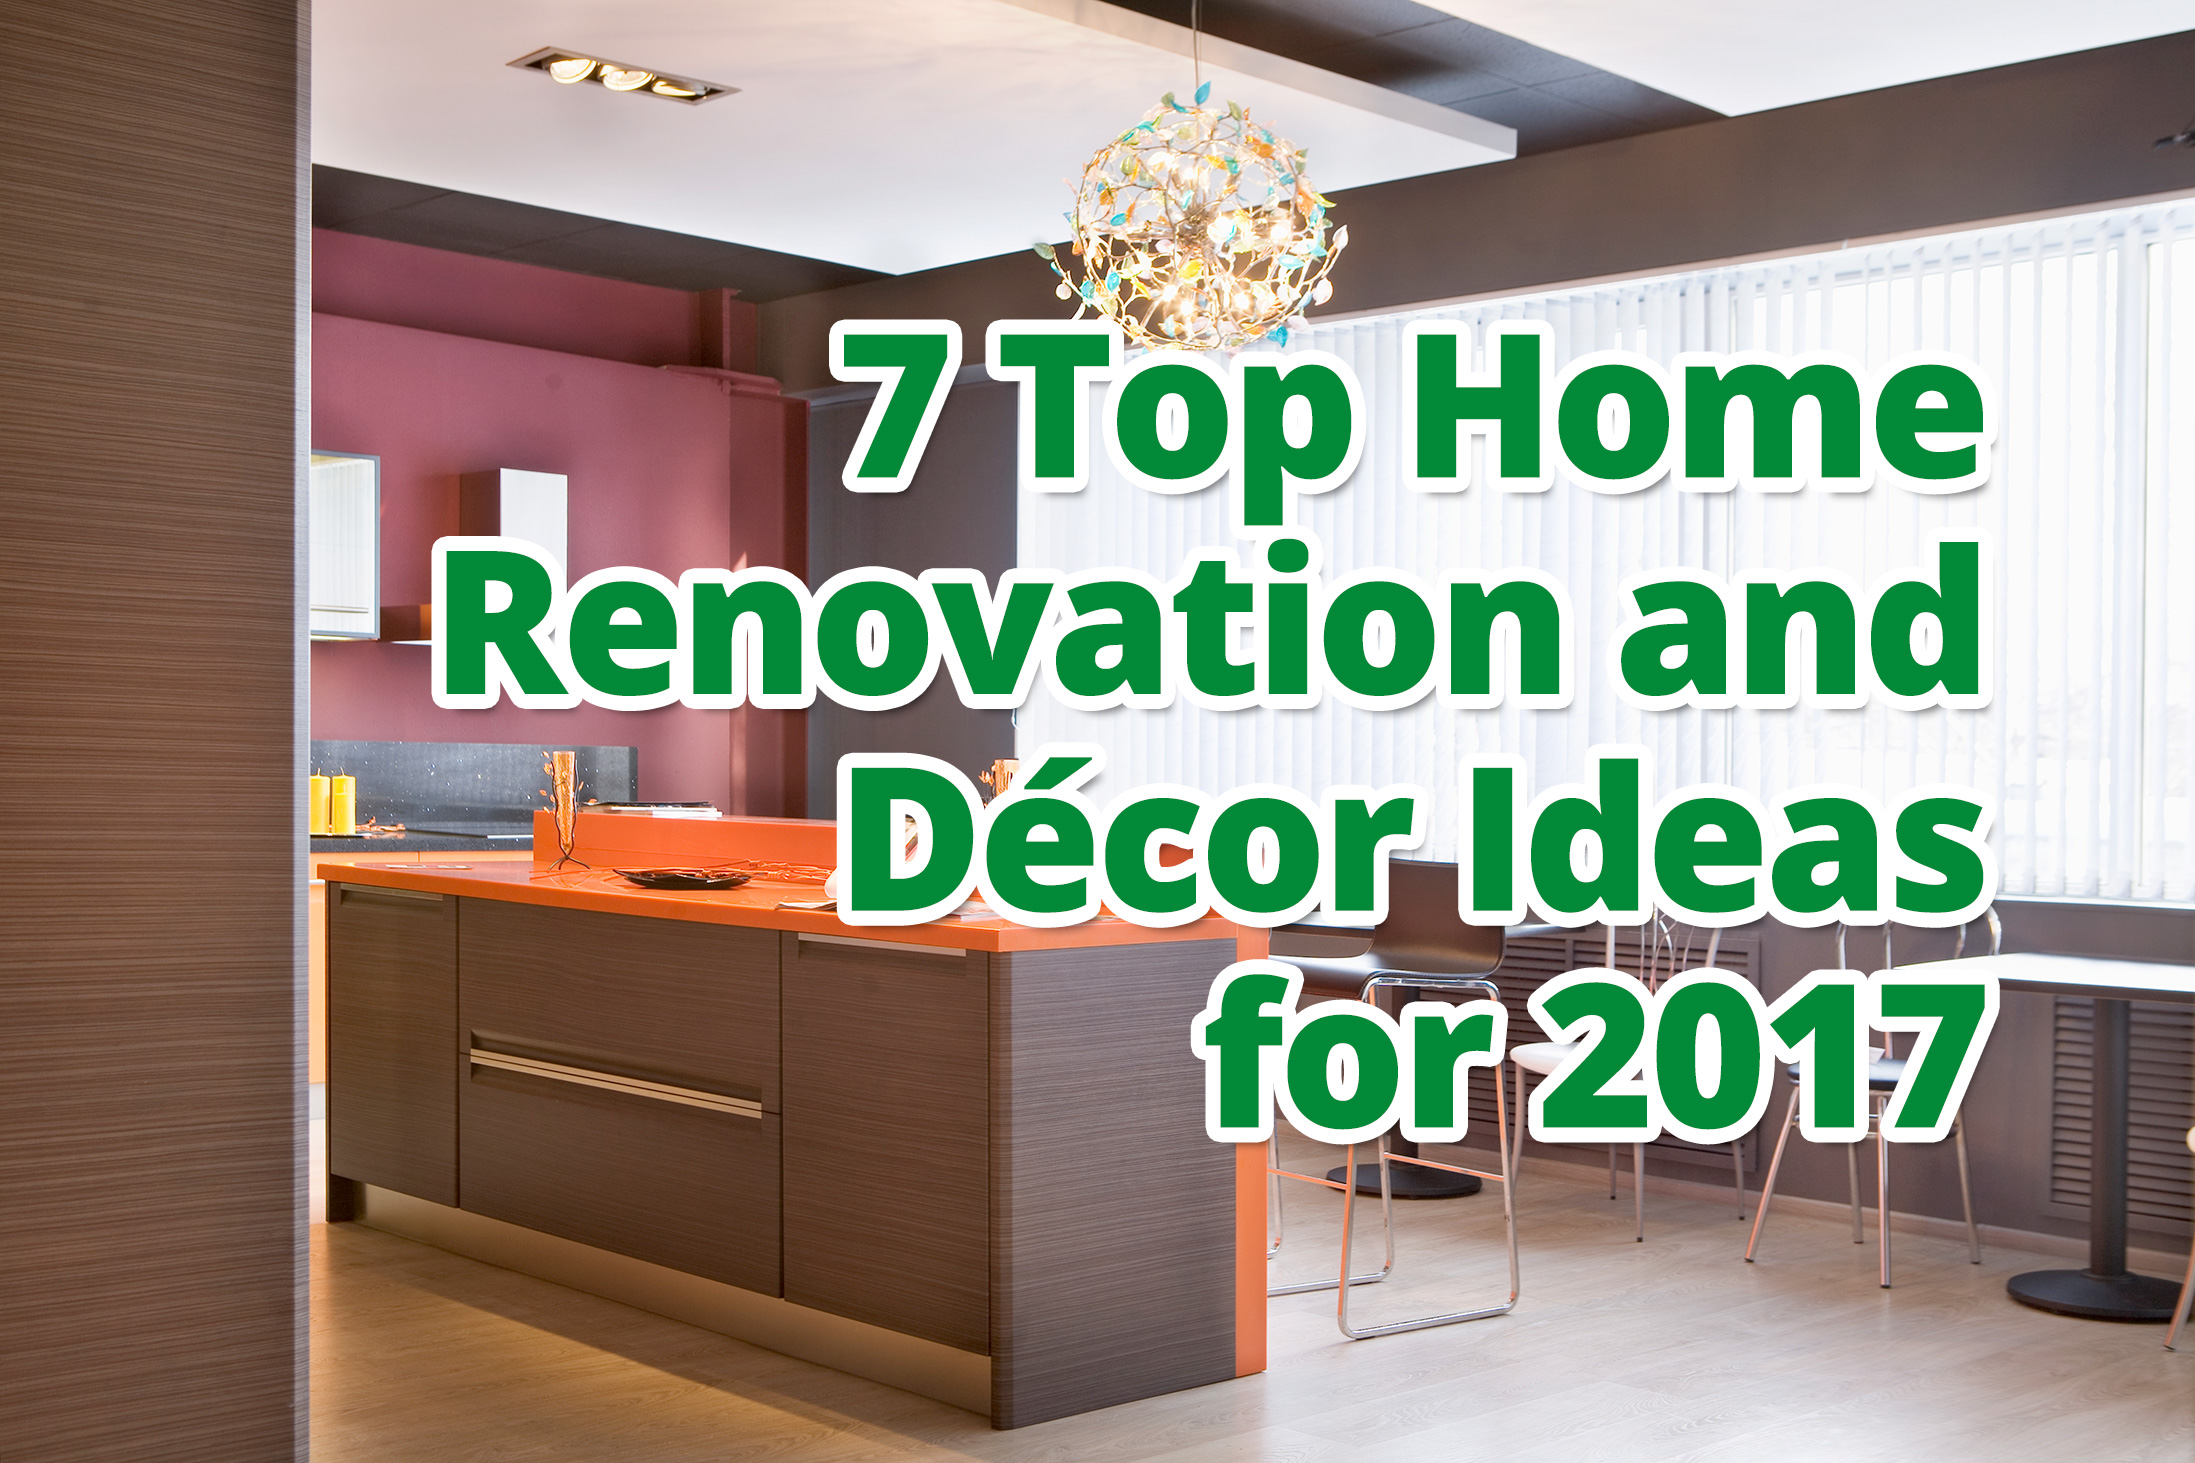 7 Top Home Renovation and Décor Ideas for 2017